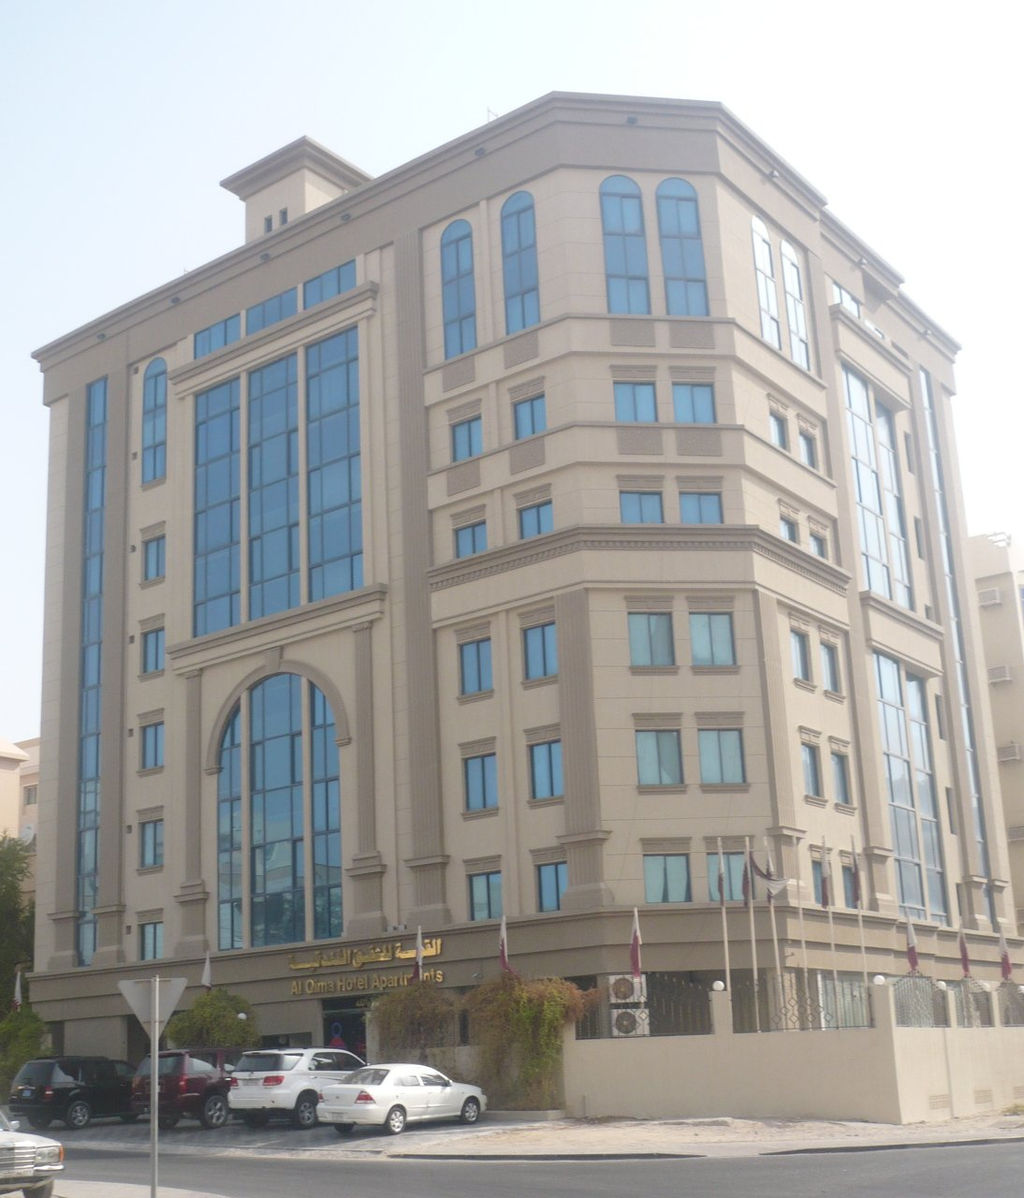 Al Qima Hotel Apartment